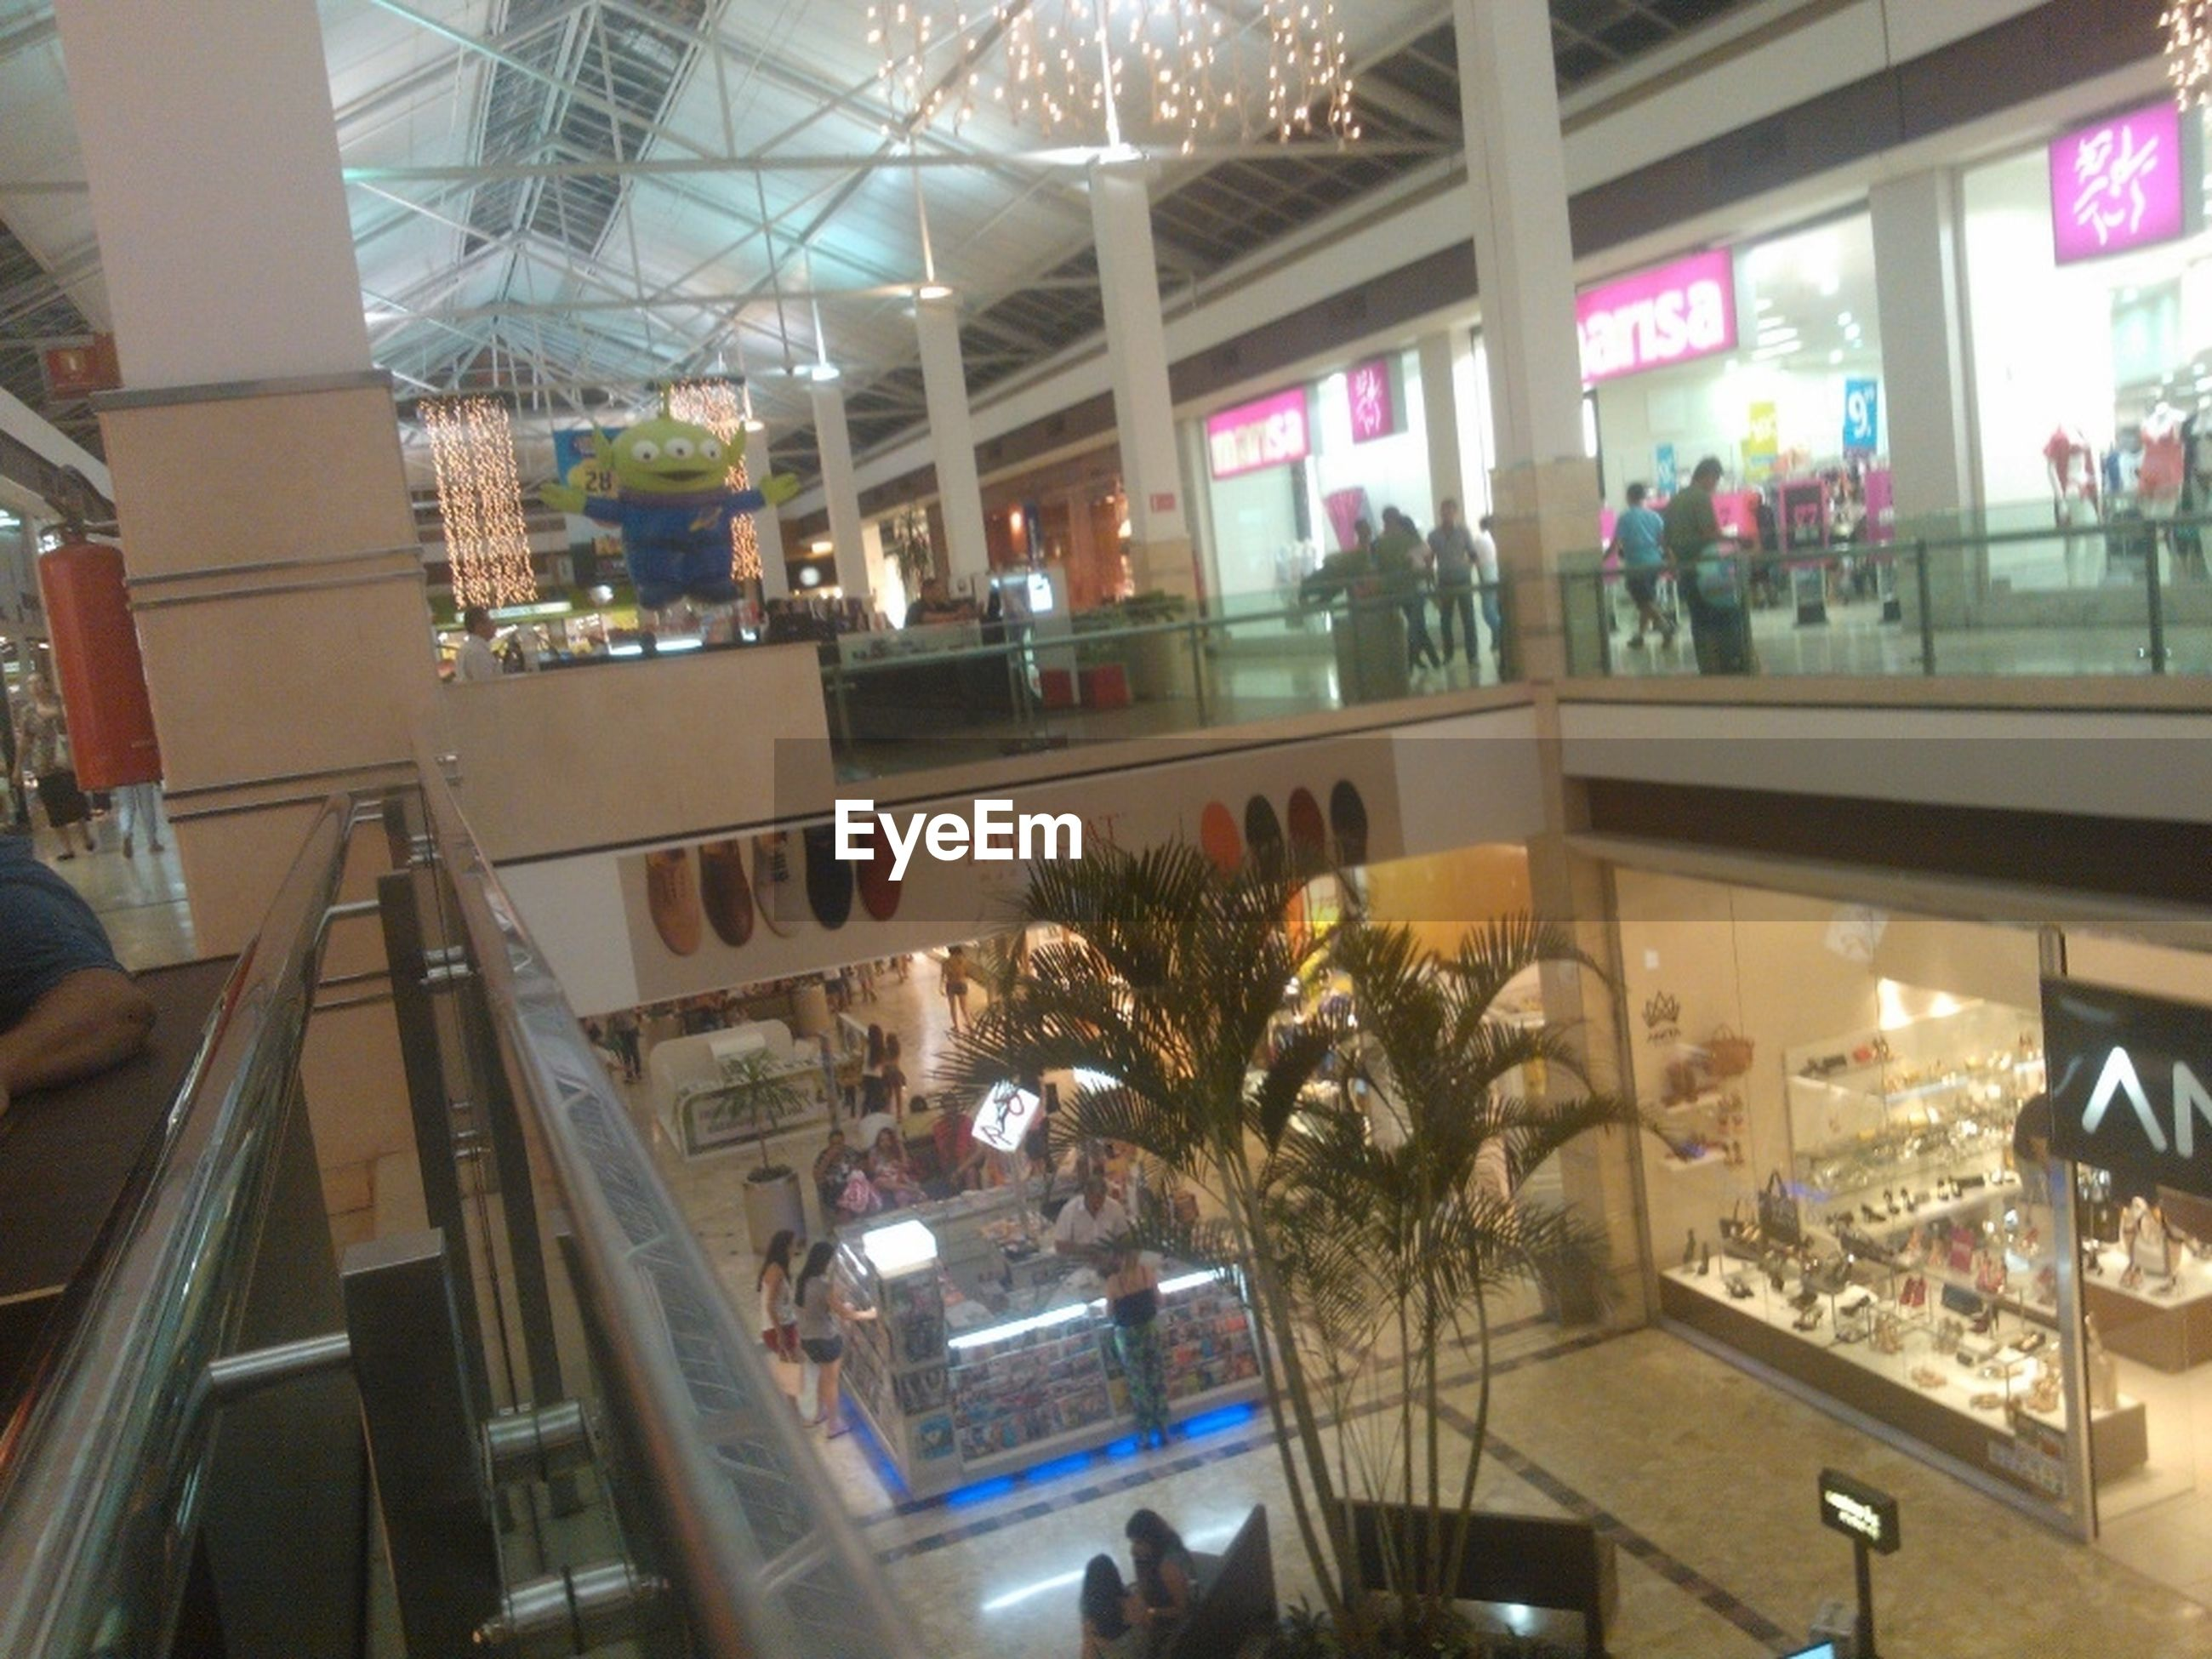 indoors, person, men, architecture, large group of people, lifestyles, built structure, leisure activity, glass - material, city, city life, window, incidental people, restaurant, shopping mall, building exterior, transparent, table, medium group of people